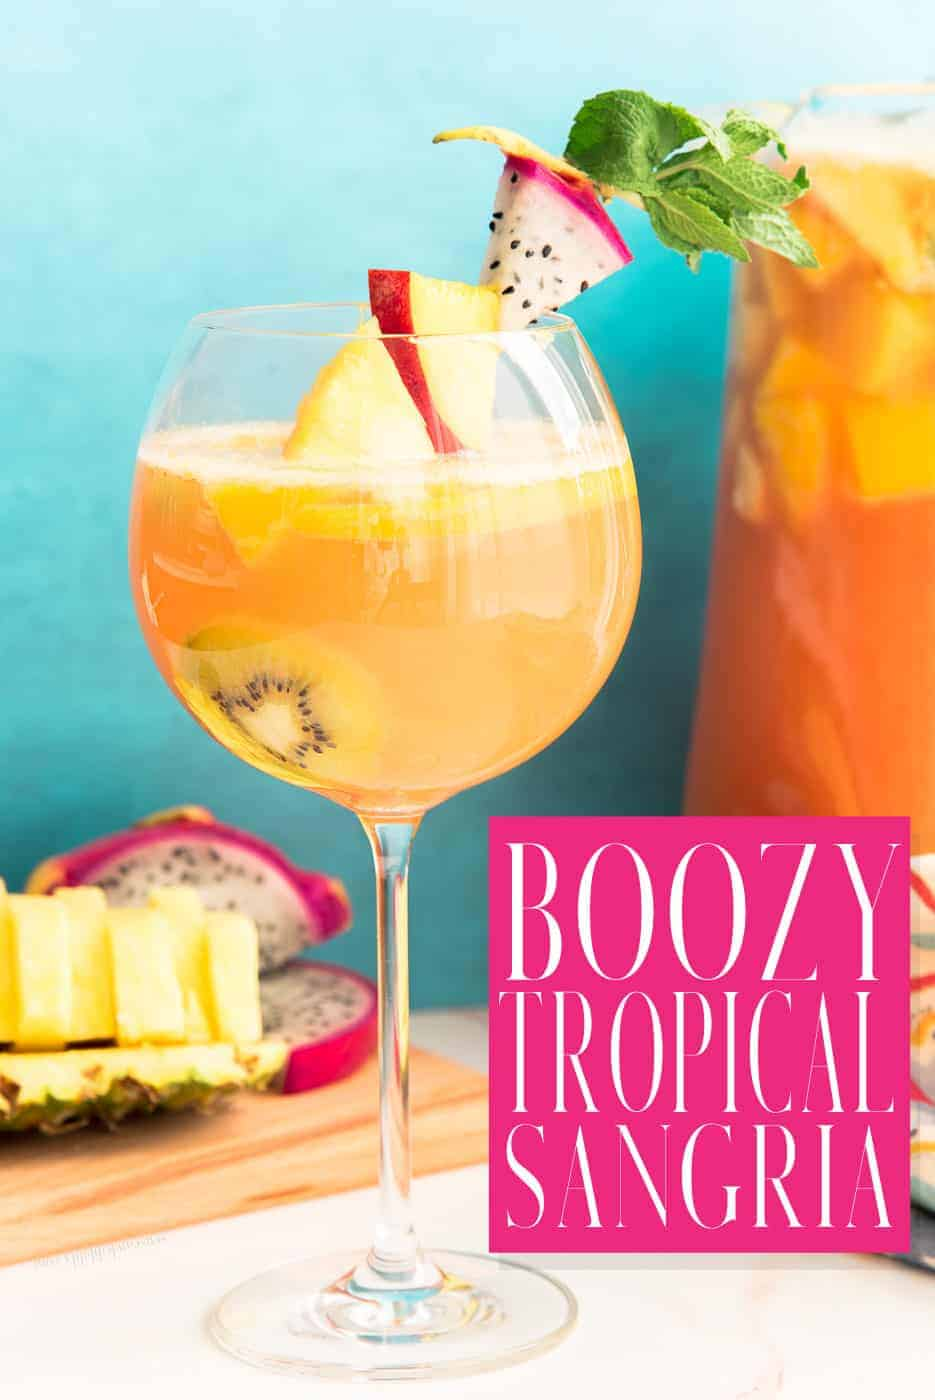 Tropical sangrias take your wine cocktail to the islands. Made with dry white wine and a mix of liqueurs, this drink will keep your guests happy and coming back for more. Recipe with swaps and subs are included. This is the ultimate party drink. #sangria #whitesangria #tropicalfruitsangria #tropicalsangria #boozysangria #whitewinedrink #cocktails #rum #passoa #peachschnapps #cointreau #moscato #guavanectar #recetadesangria #PuertoRicanrecipes via @ediblesense